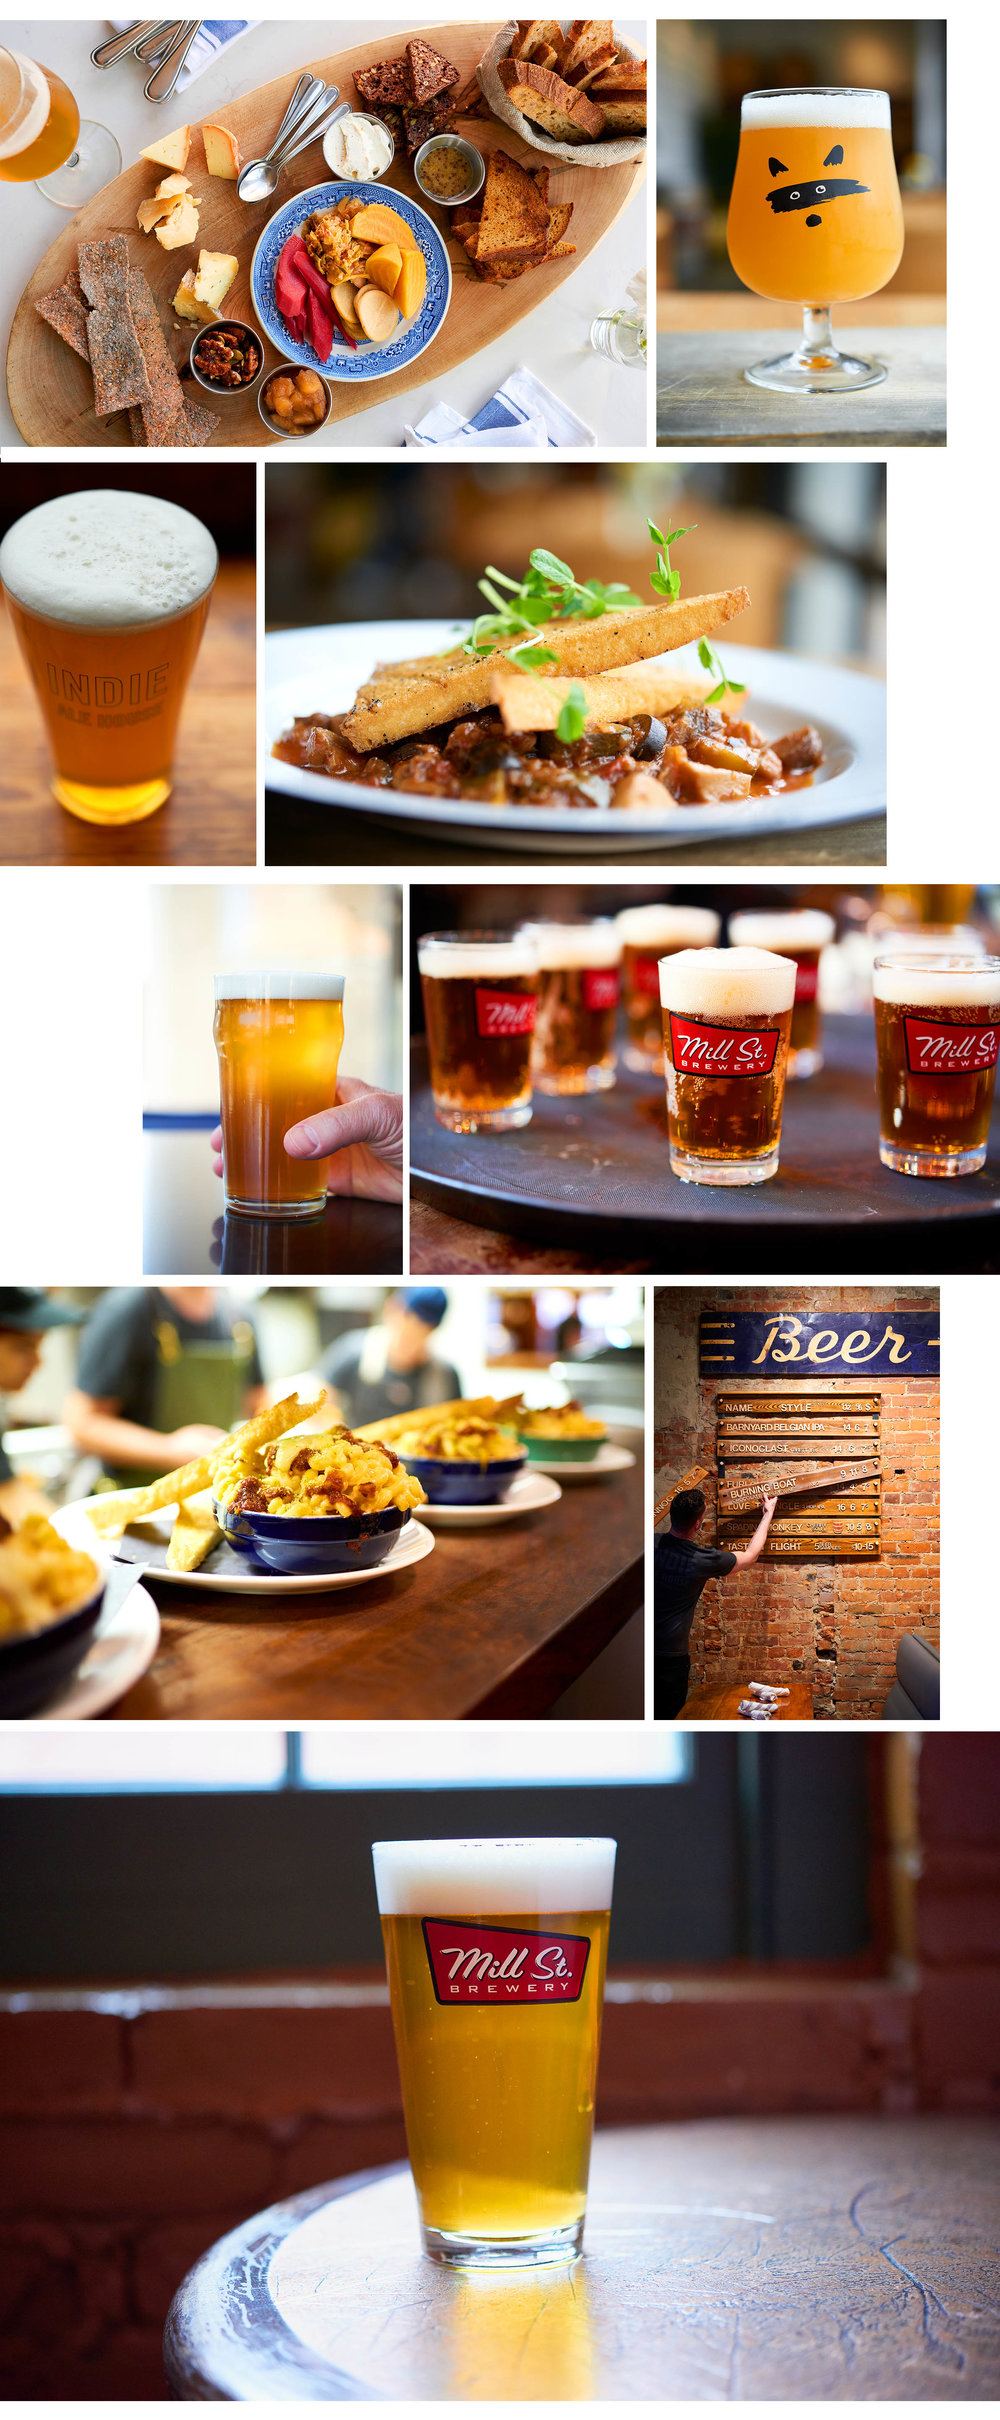 beer-collage-flat.jpg